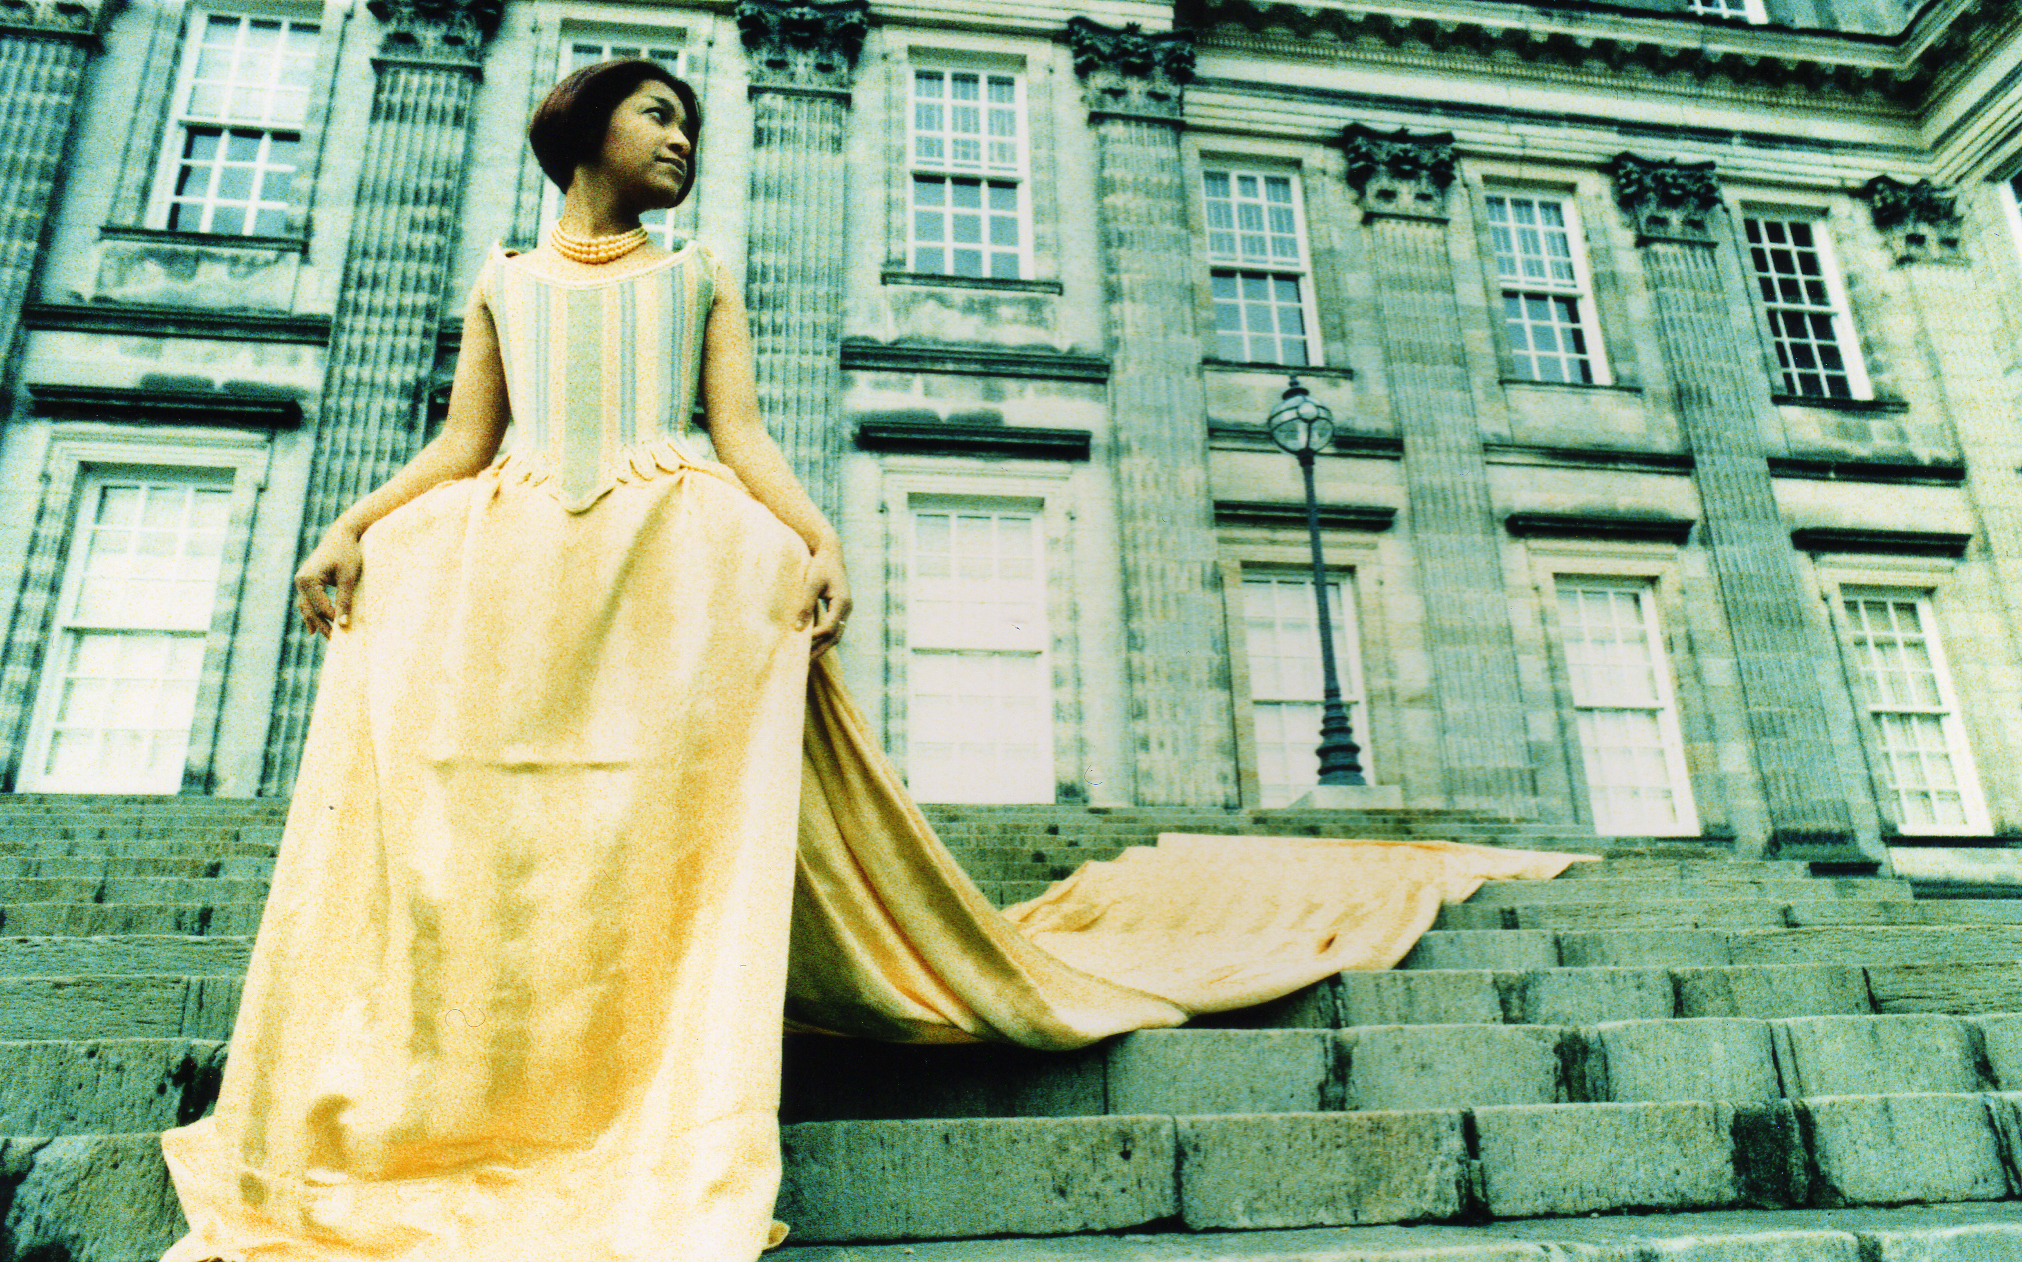 Canary Corseted mock 18th century ball gown - full front but off colour image on steps  - photo.jpg